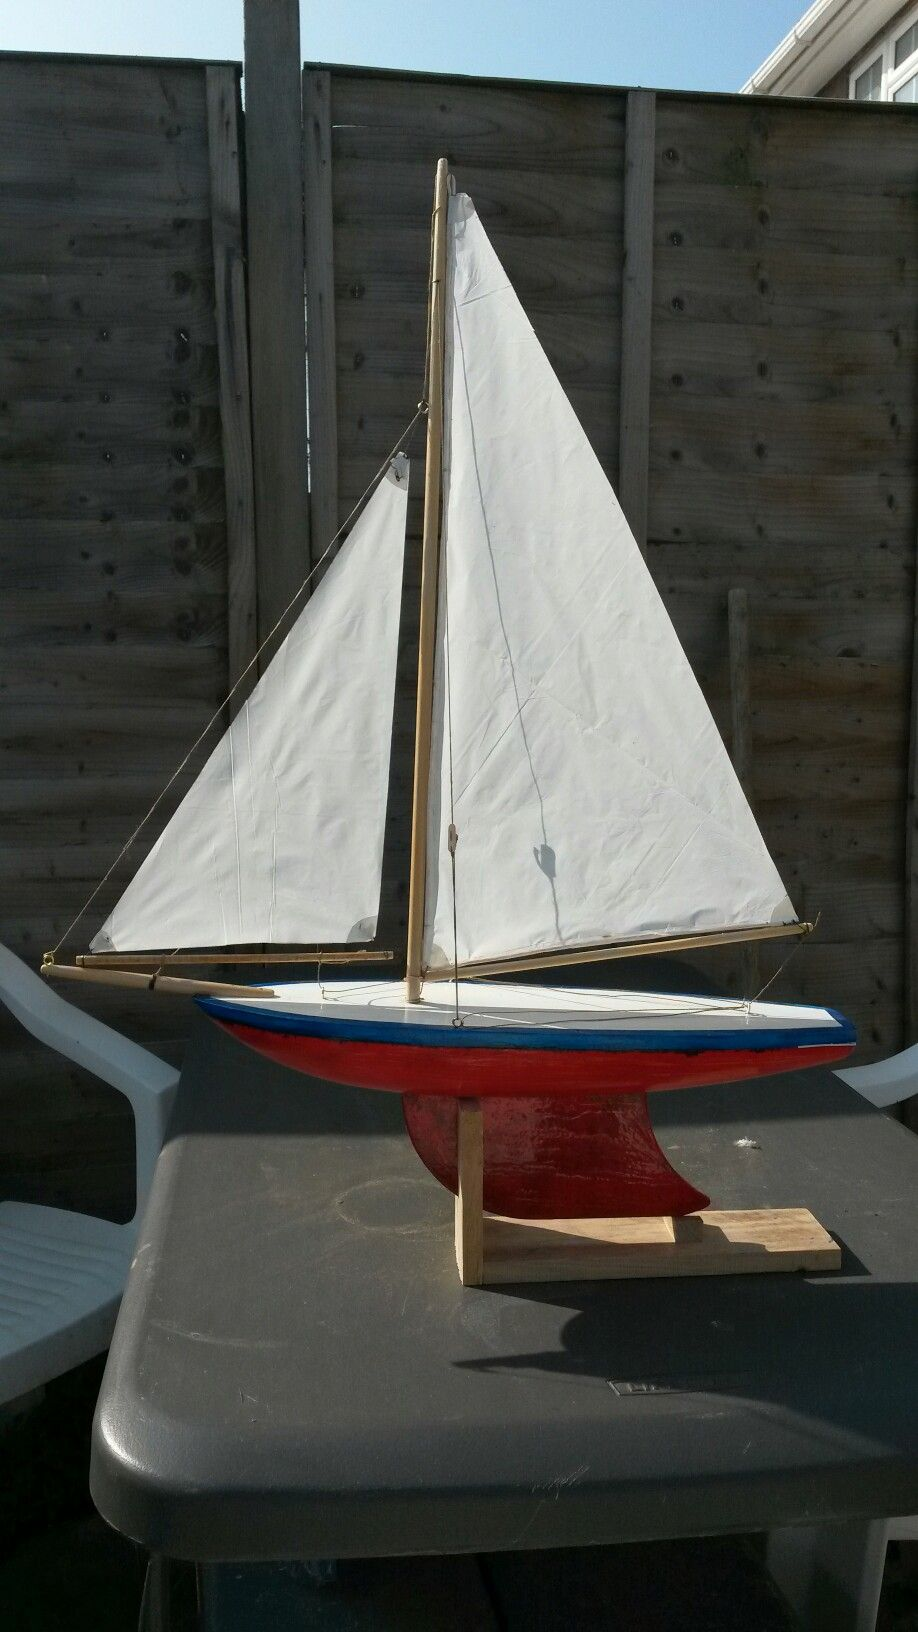 An old Star pond yacht renovated    could not restore to